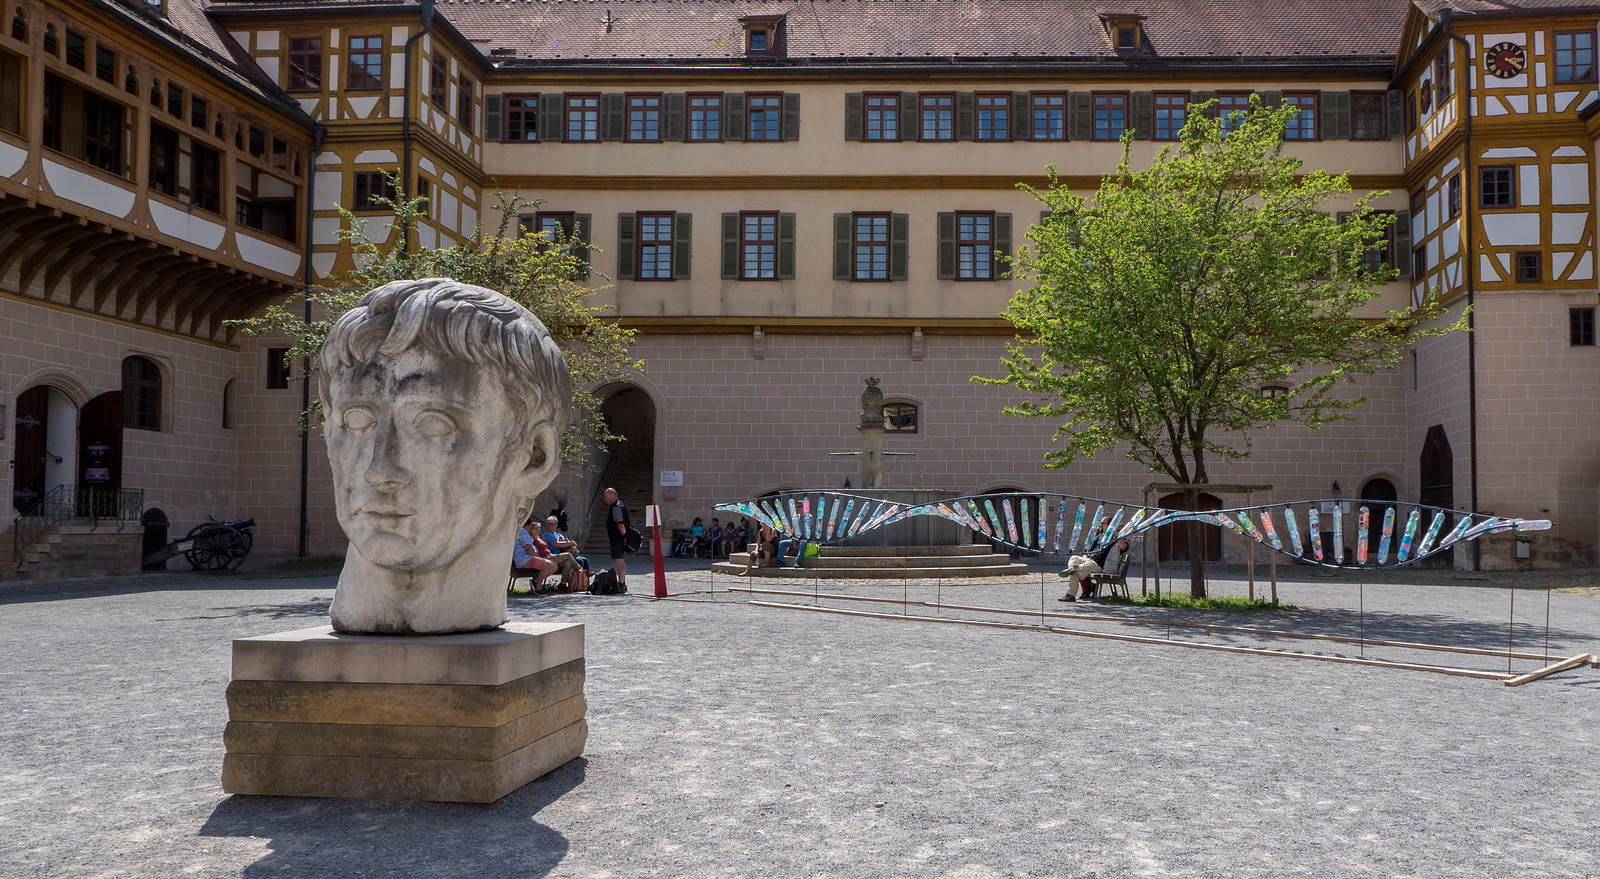 Things to do in Tubingen Germany. DNA sculpture in courtyard of castle in Tubingen.